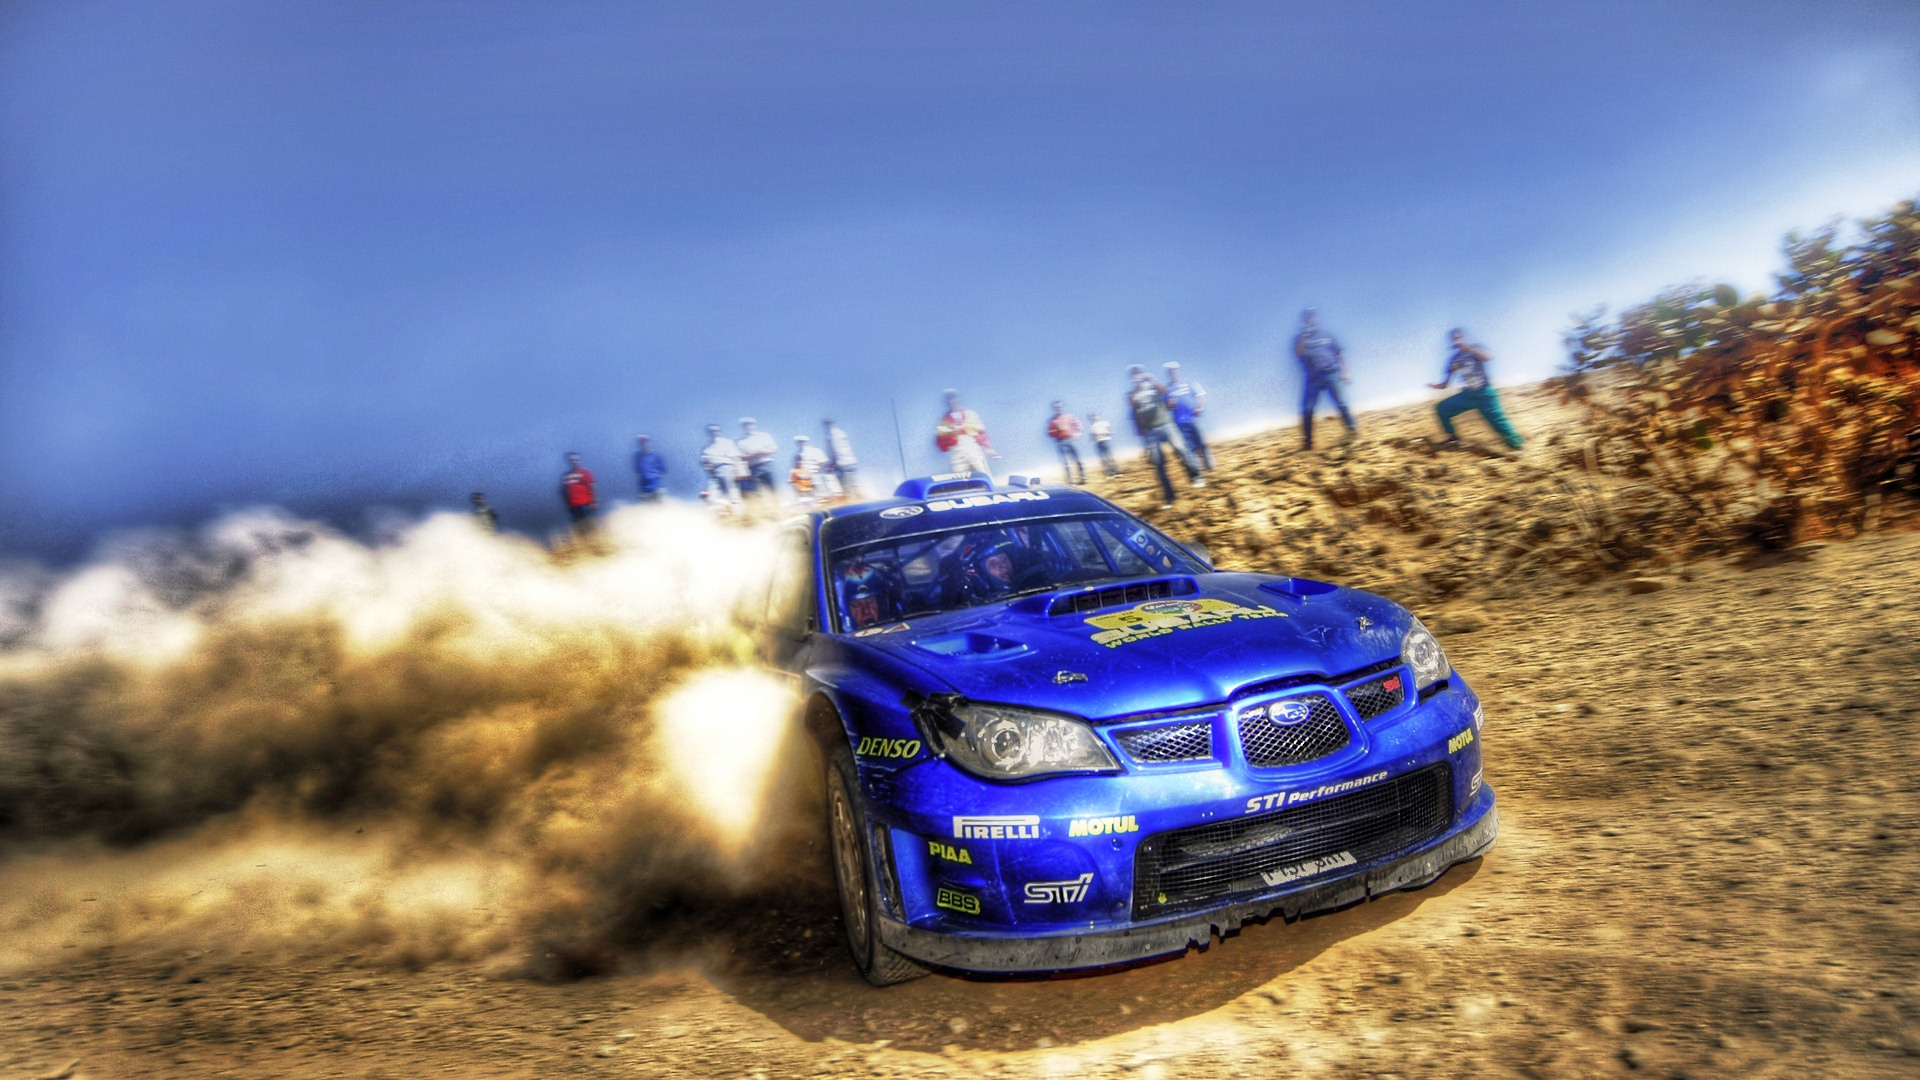 Amazing Rally Car Wallpaper